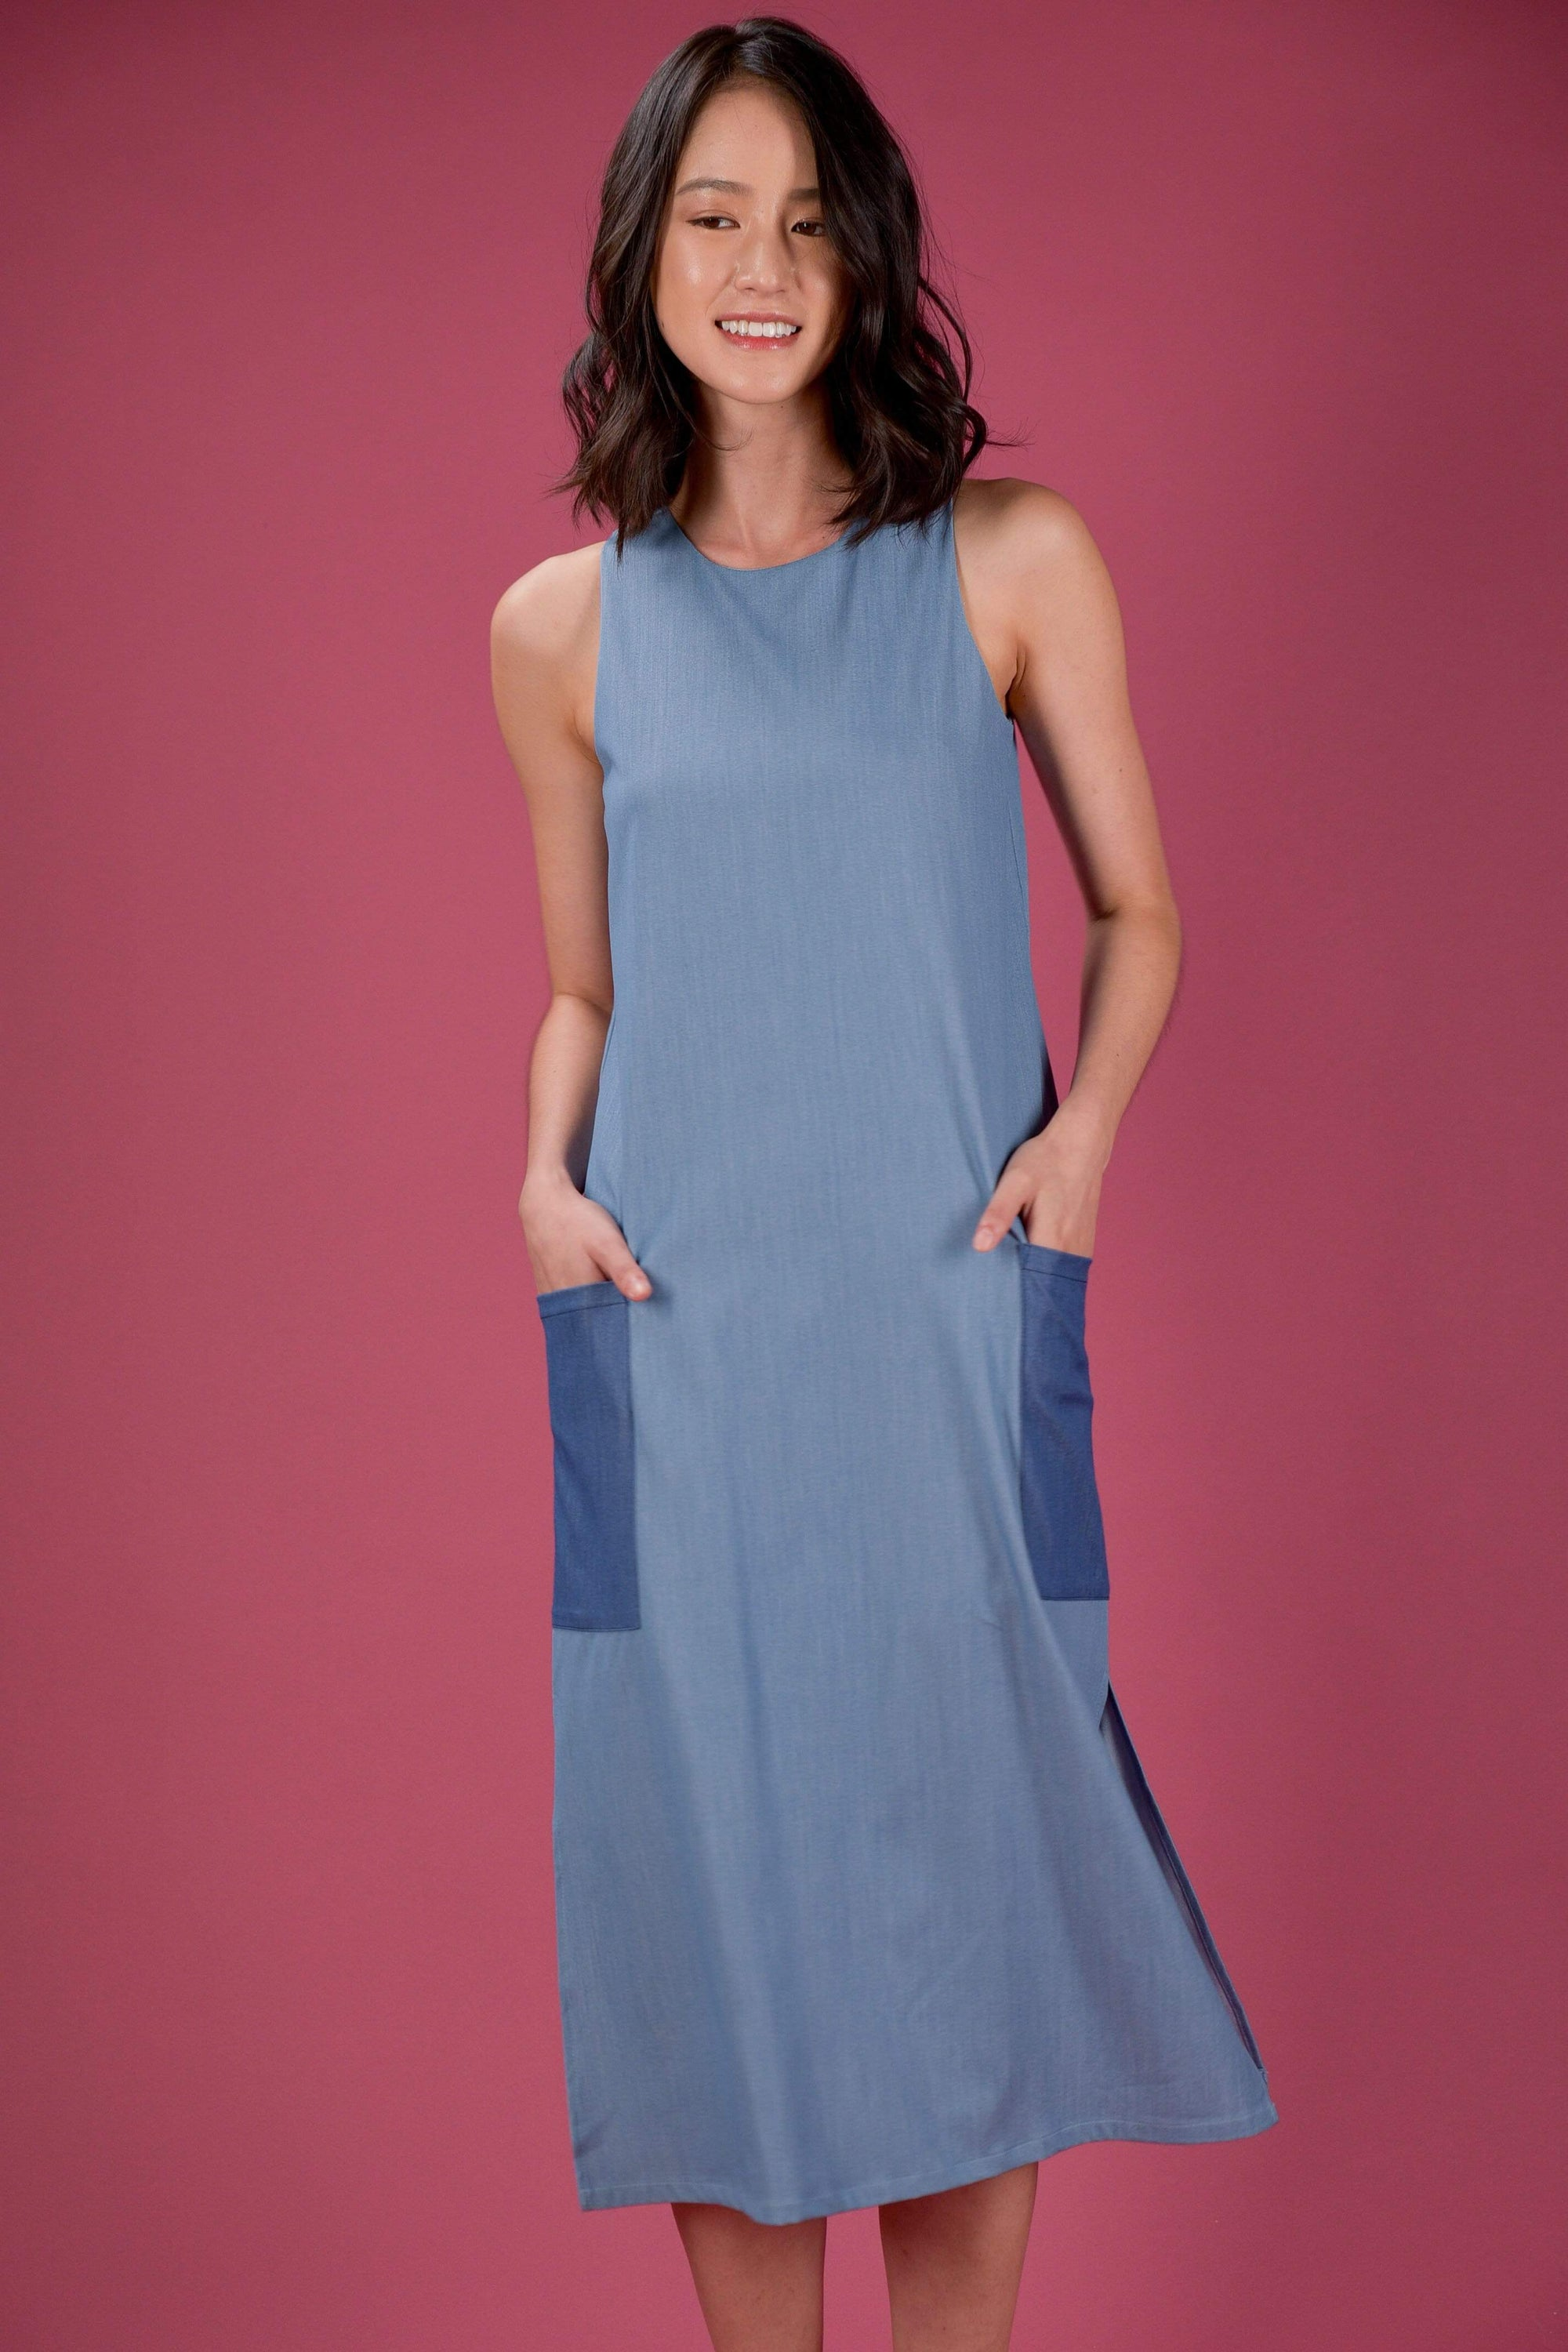 AWE Dresses EVERYDAY COLOURBLOCK A-LINE MIDI DRESS IN LIGHT DENIM